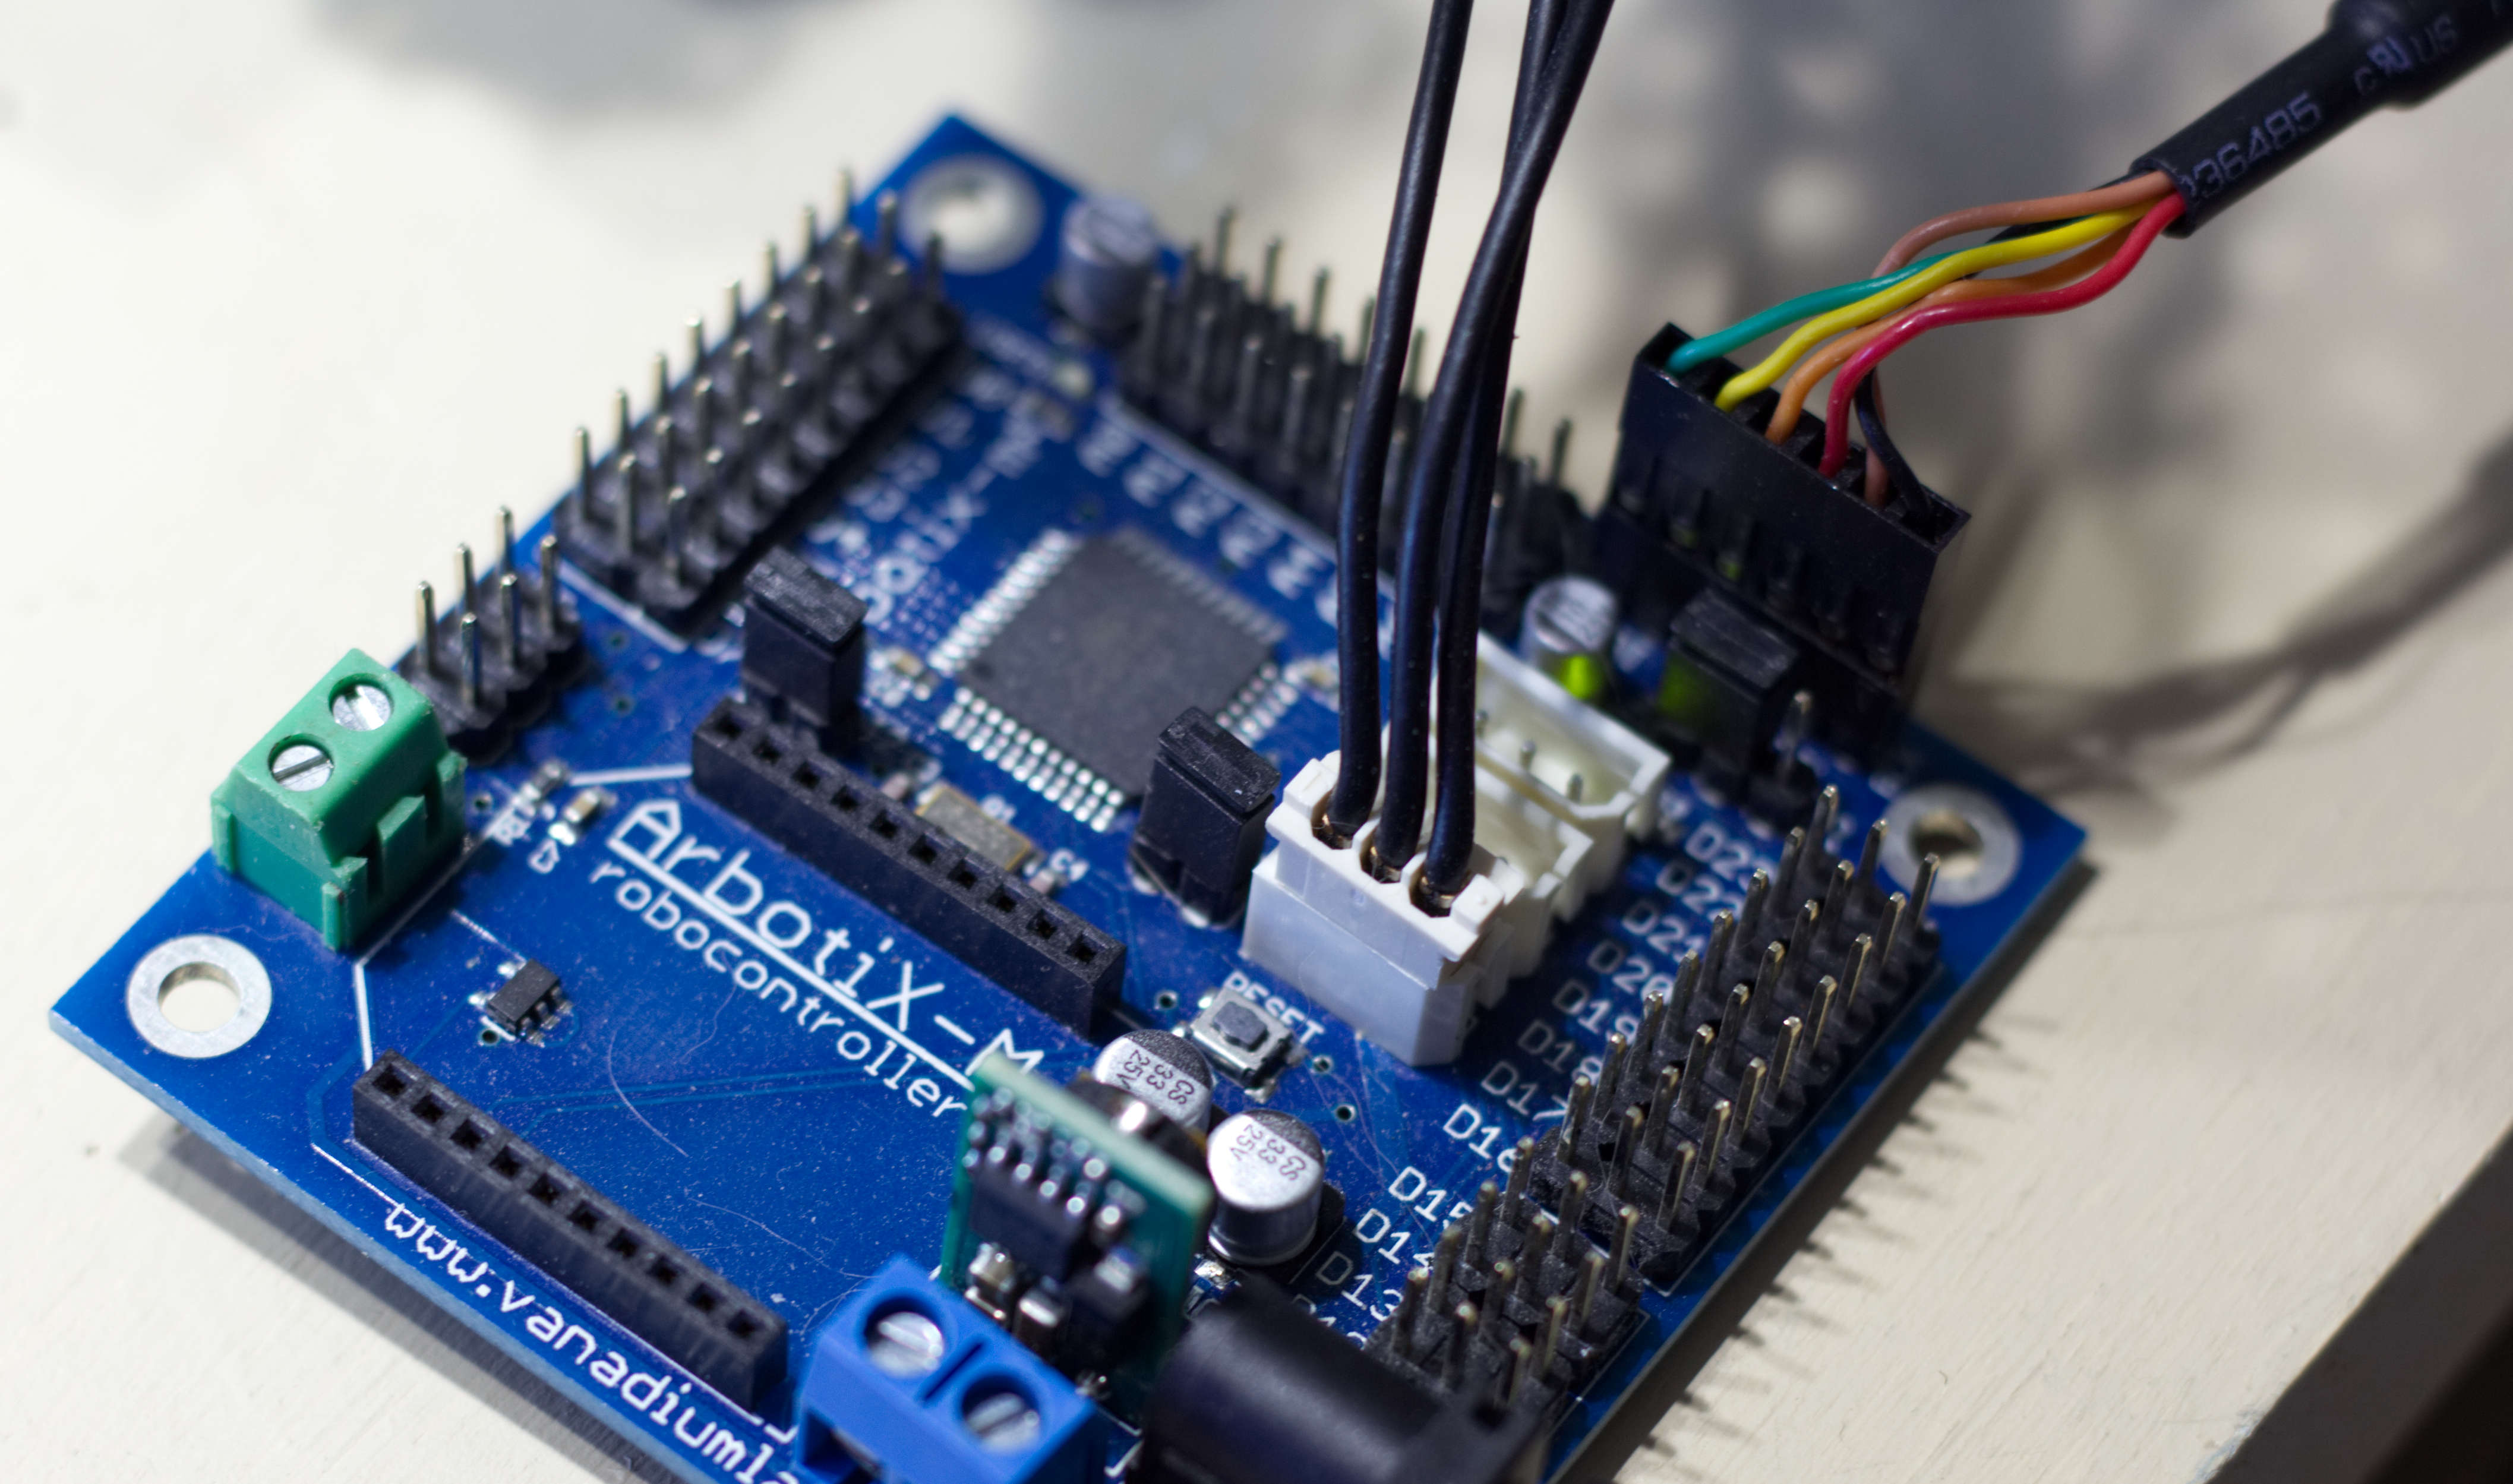 Close up of the Arbotix-M robocontroller.